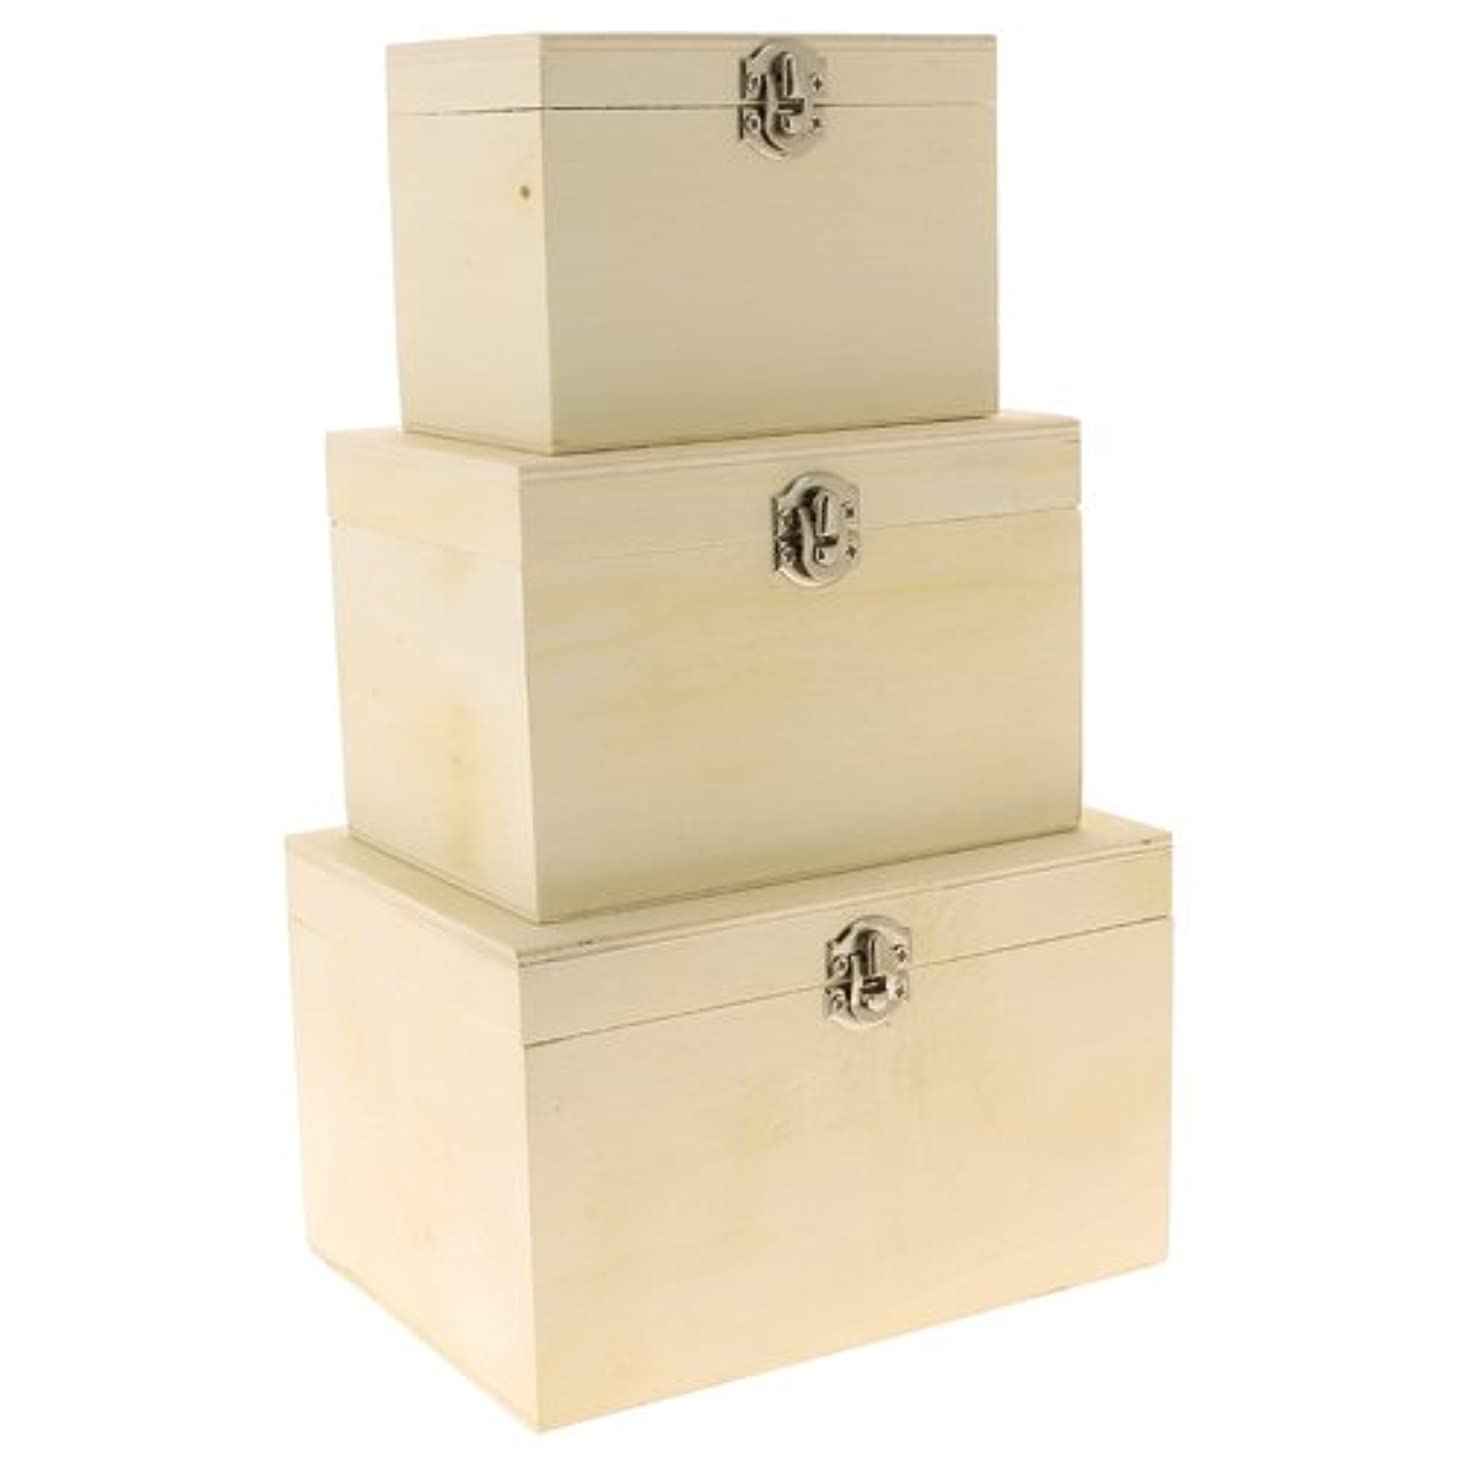 La Fourmi 160 x 120 x 100 mm Nesting Wood Boxes, Set of 3